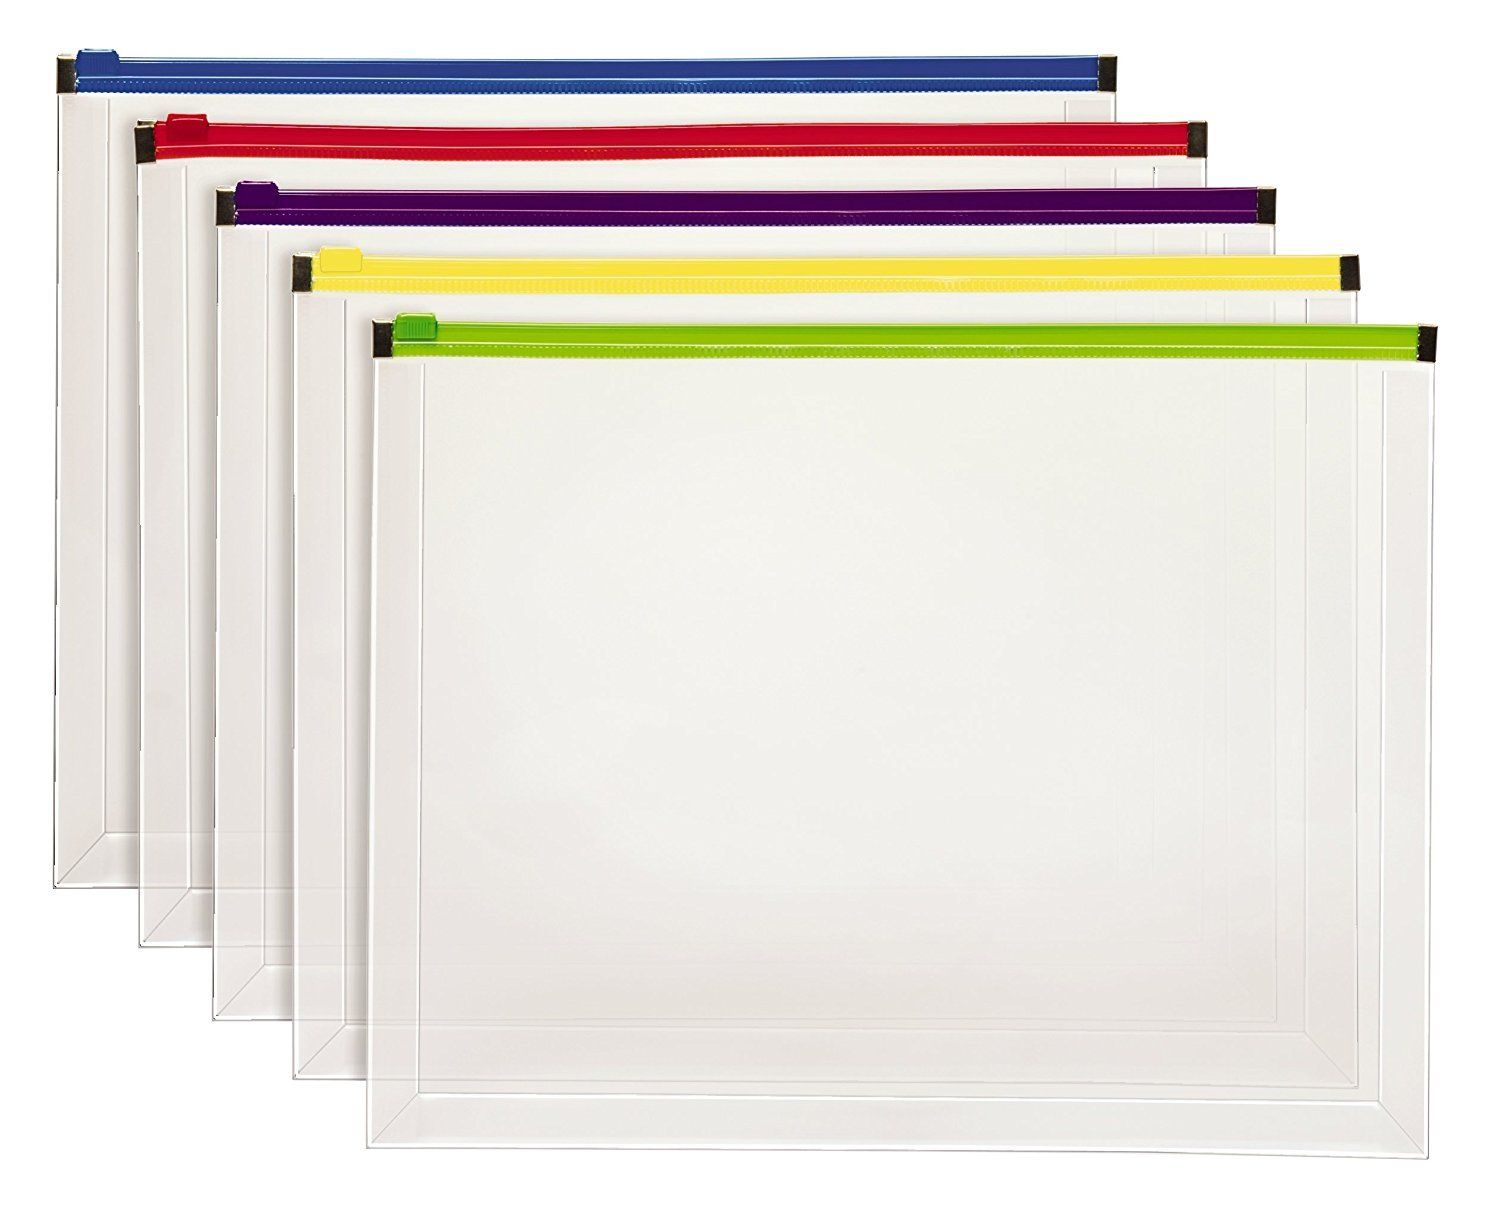 Pendaflex Poly Zip Envelope, Letter Size, Assorted Color Zippers, 5 per Pack 2-Pack